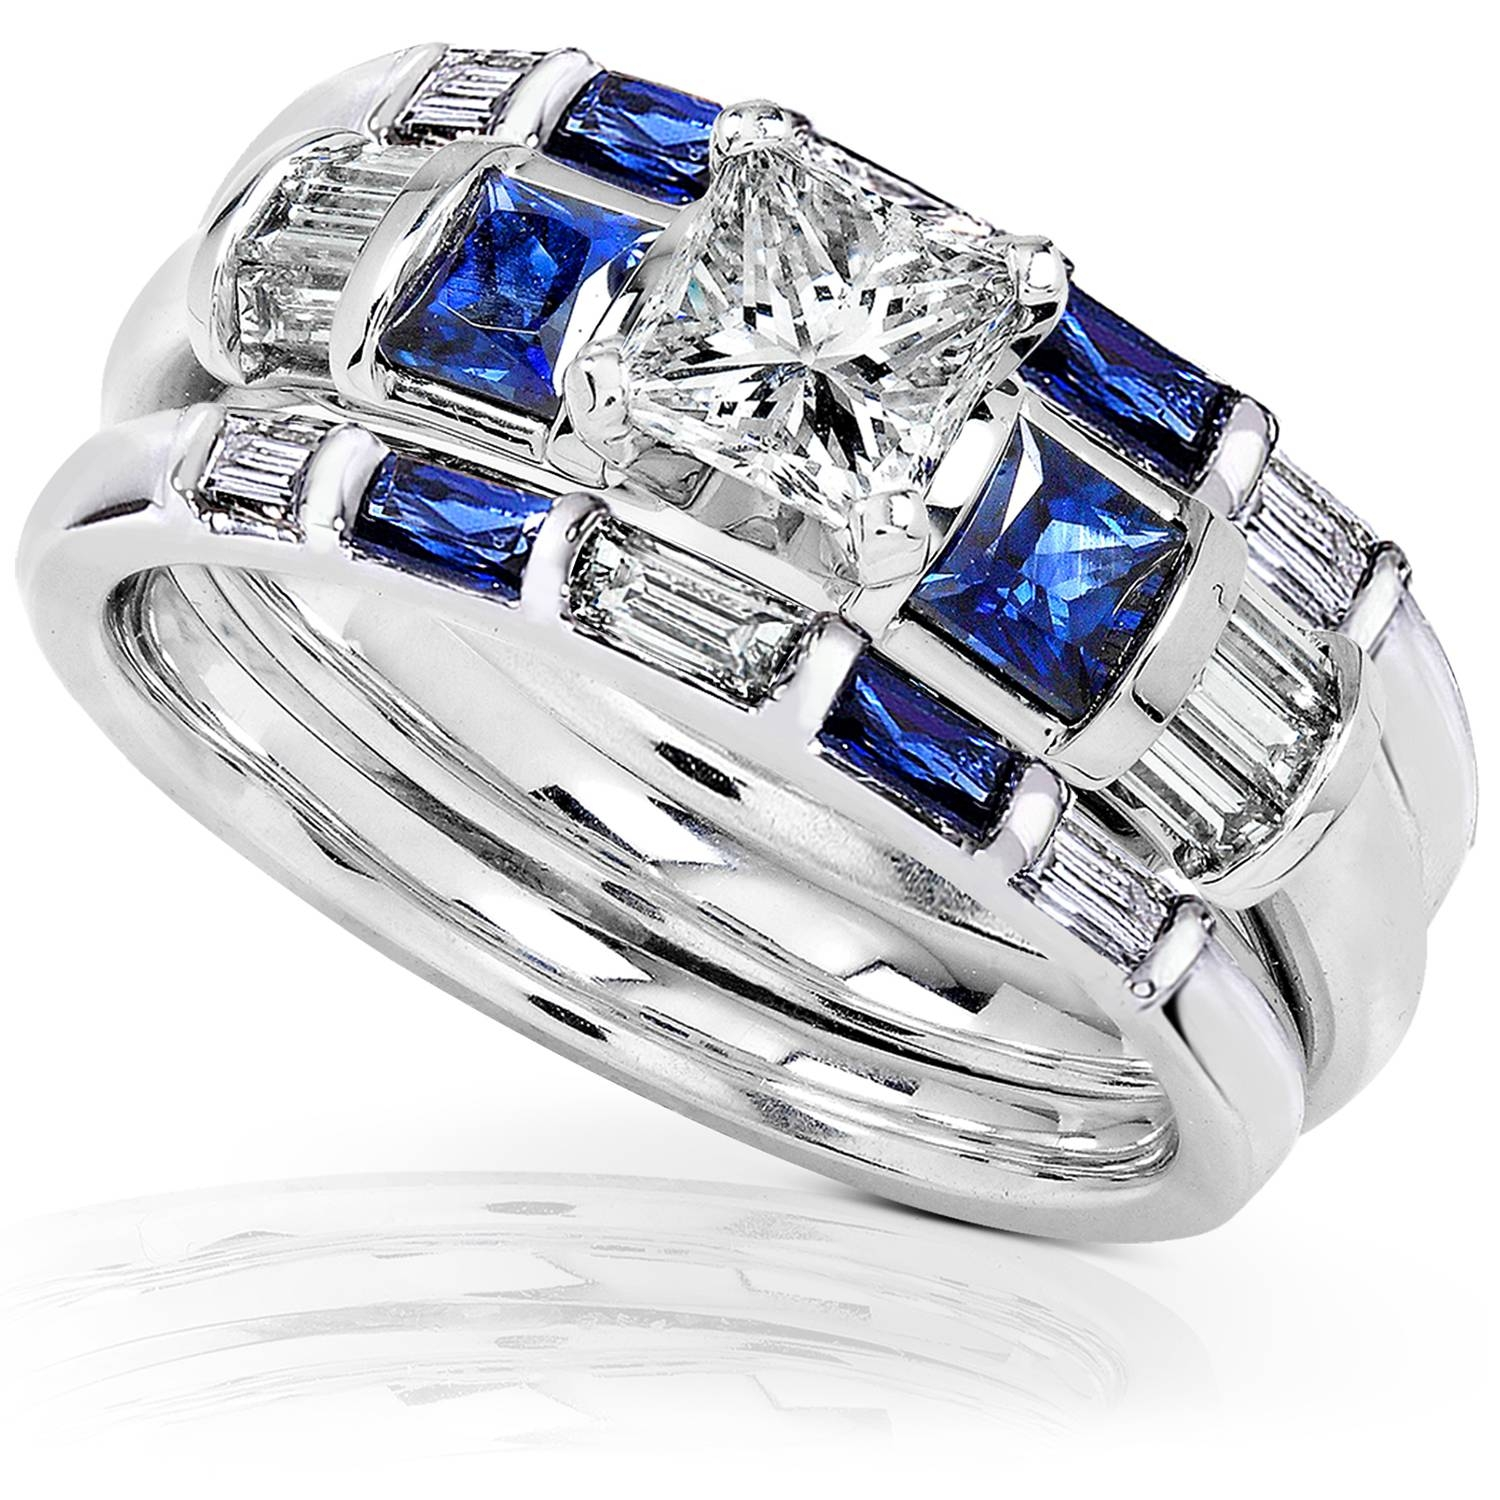 Blue Sapphire & Diamond Wedding Rings Set 1 1/2 Carat (Ctw) In 14K In Blue Diamond Wedding Rings Sets (View 6 of 15)